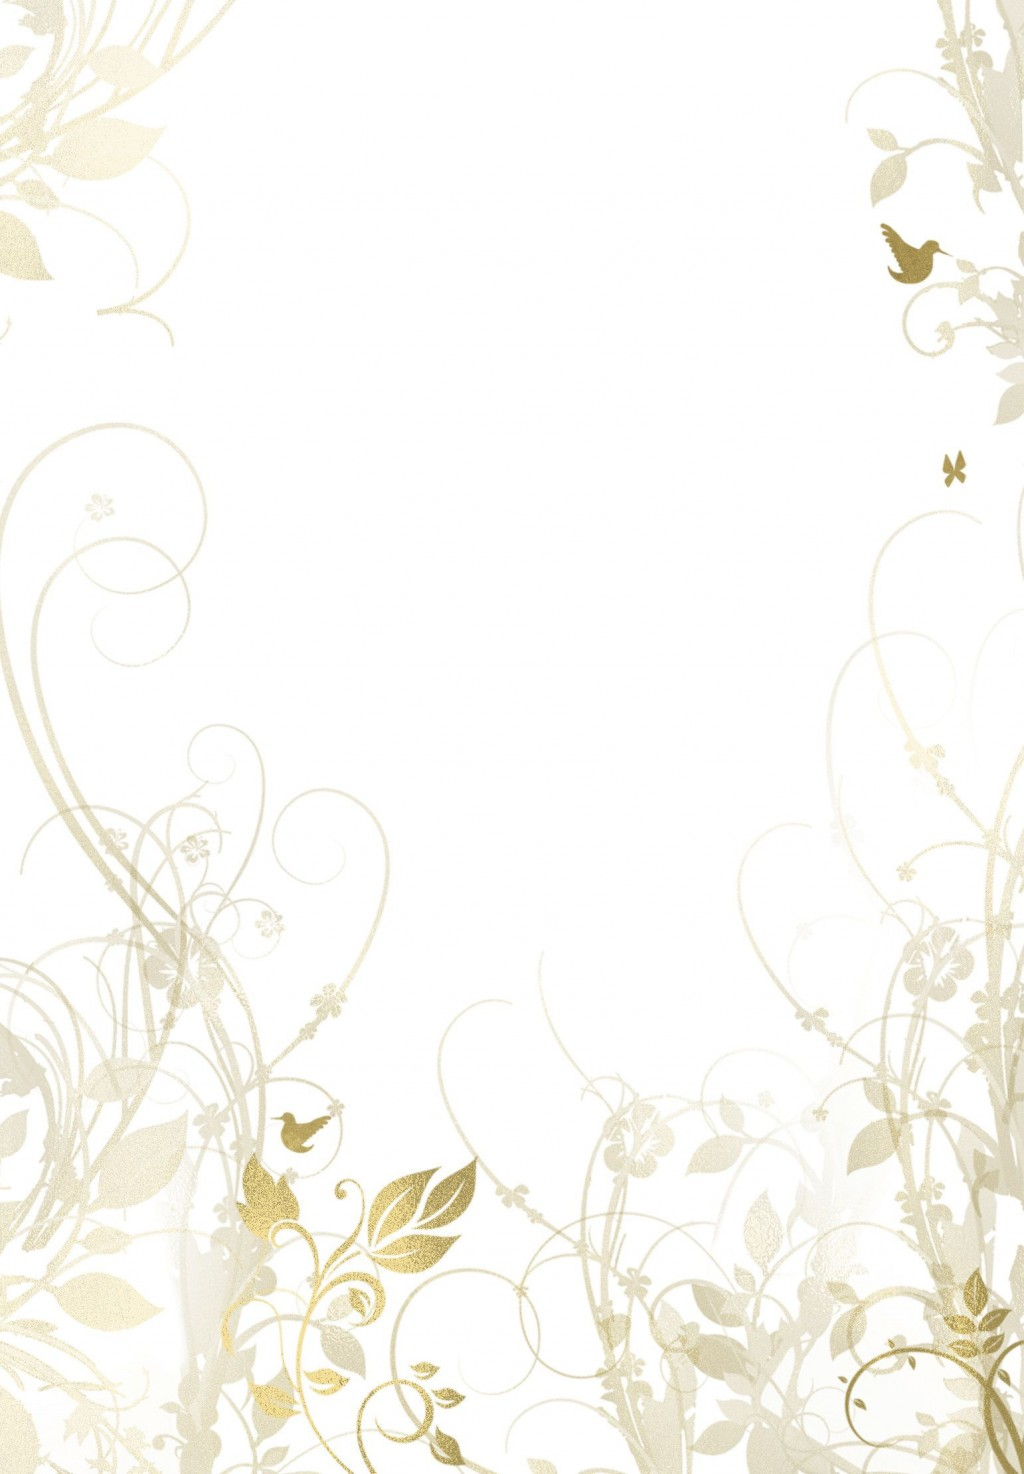 000 Wonderful Blank Wedding Invitation Template Picture  Templates Free Download Printable Royal BlueLarge